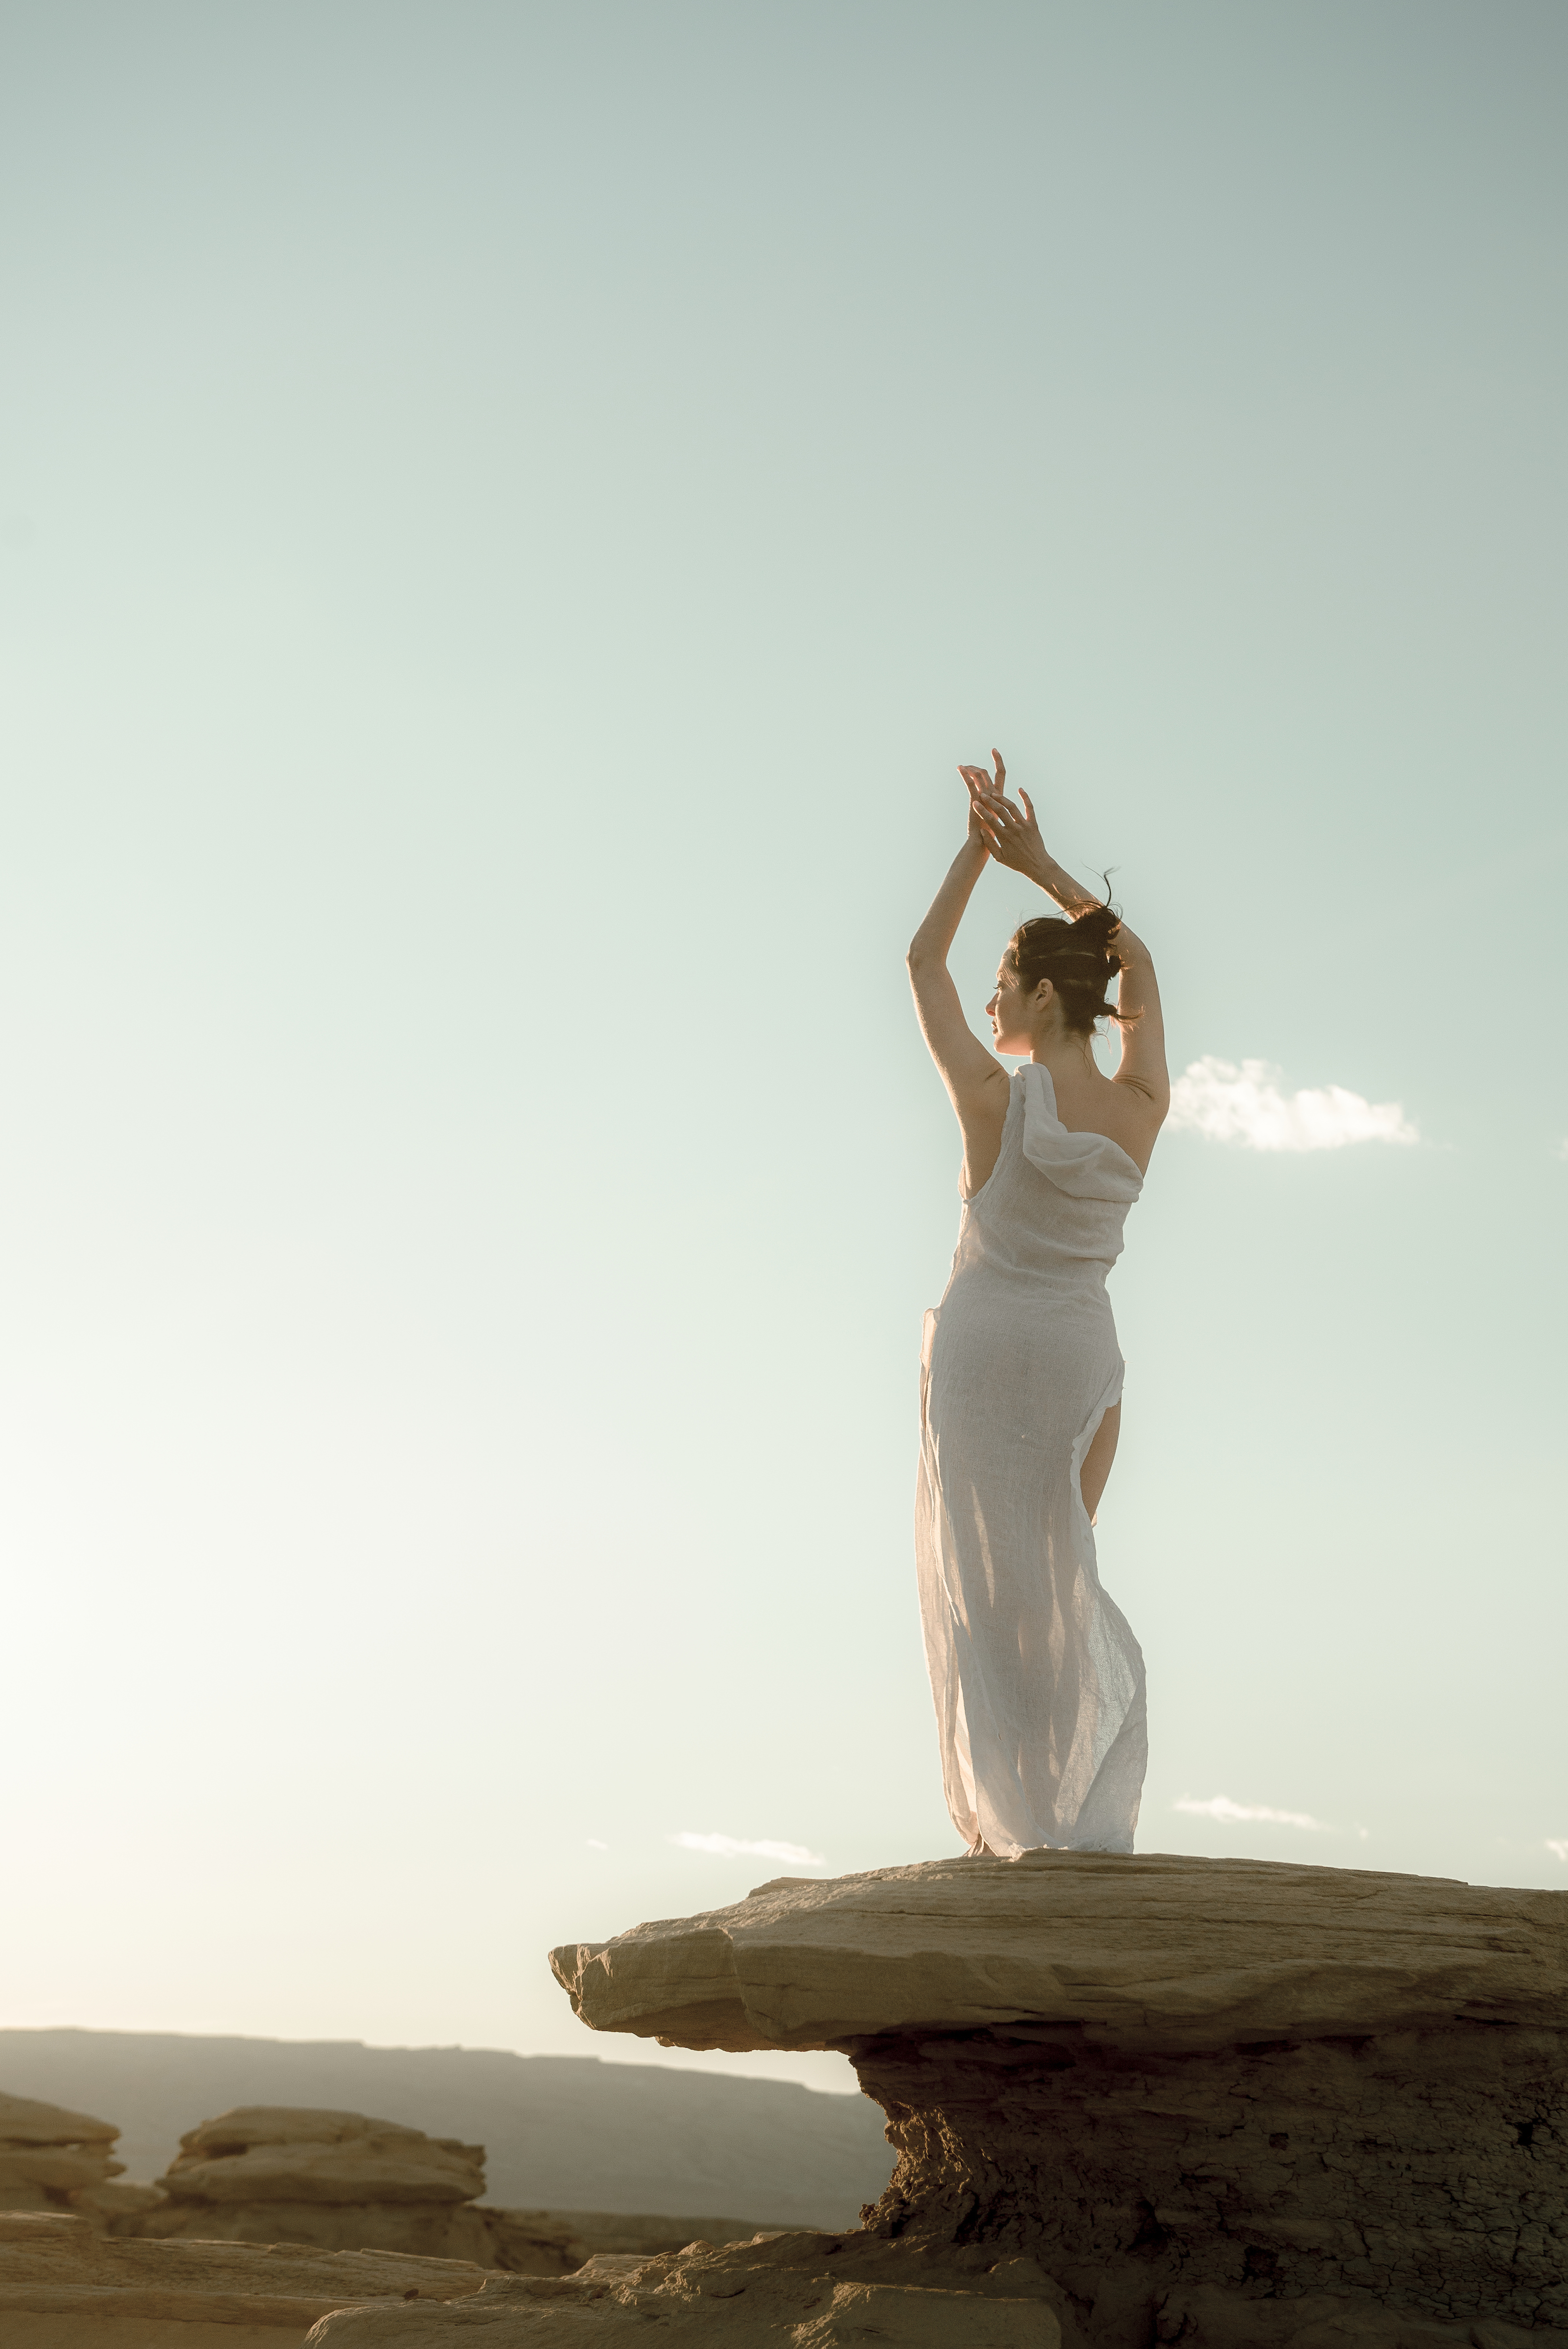 A woman holds her hands above her head while wearing a white dress at sunset